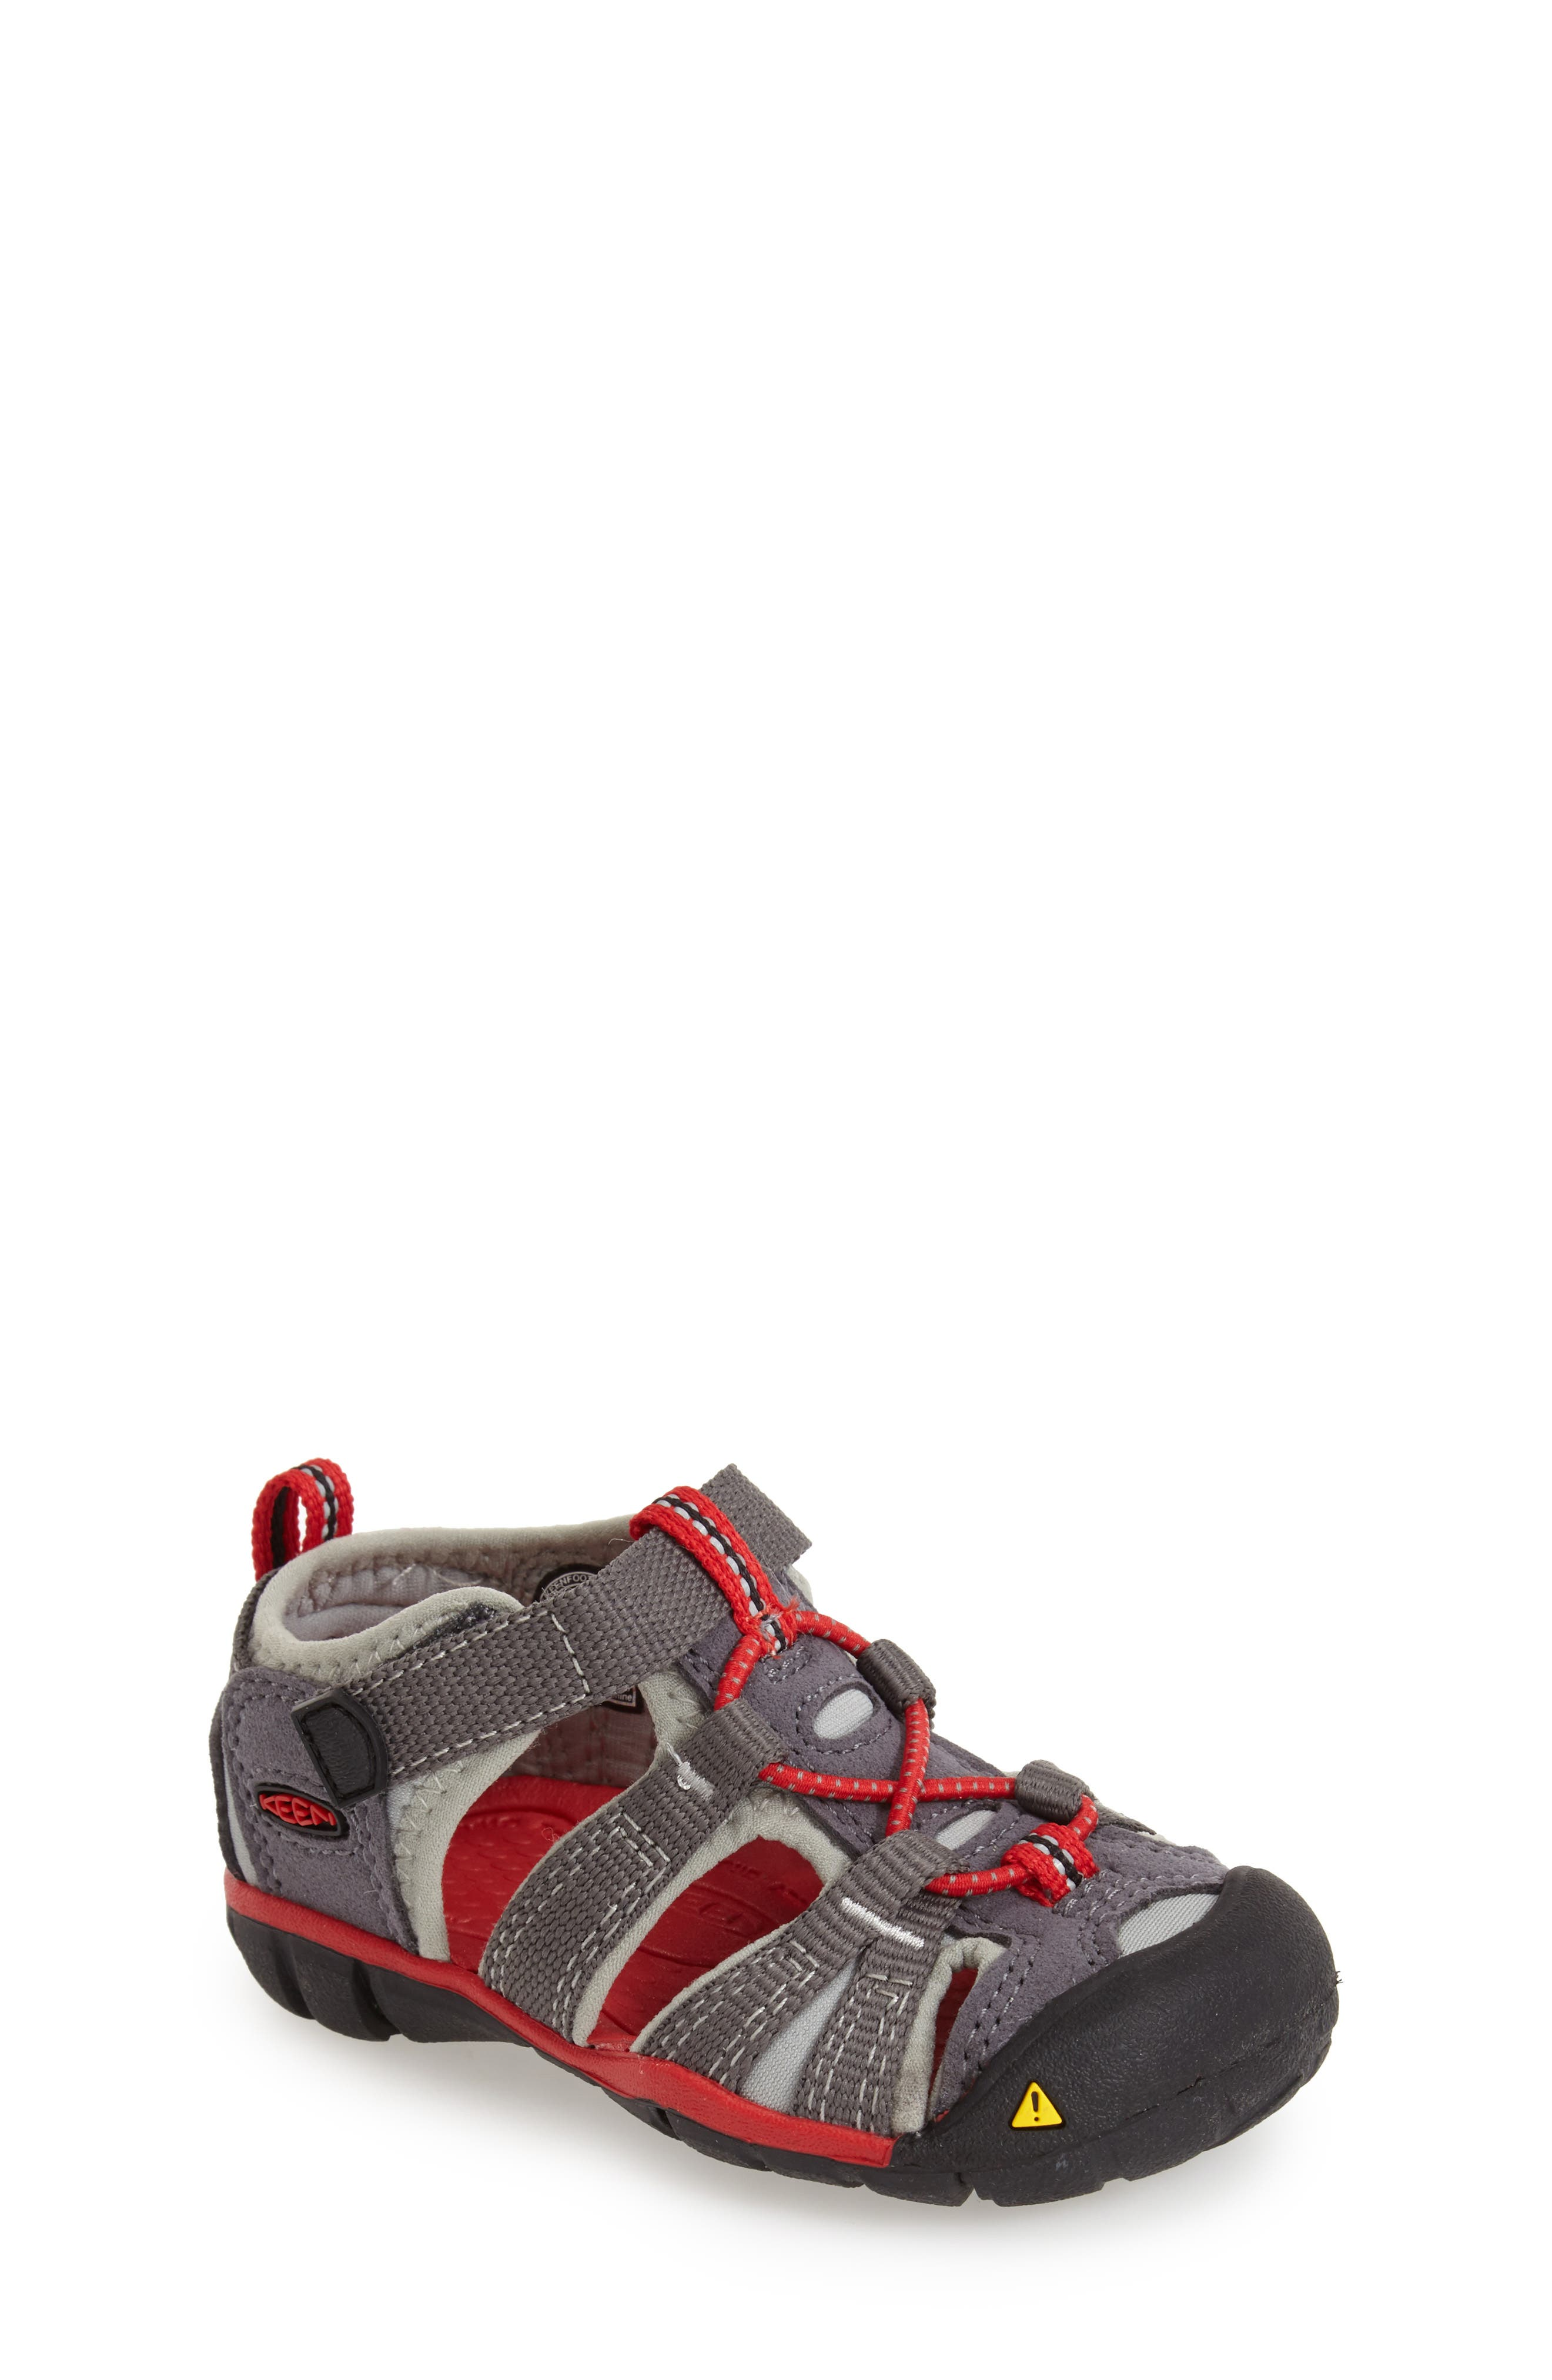 Seacamp II Water Friendly Sandal,                             Main thumbnail 1, color,                             Magnet/ Racing Red